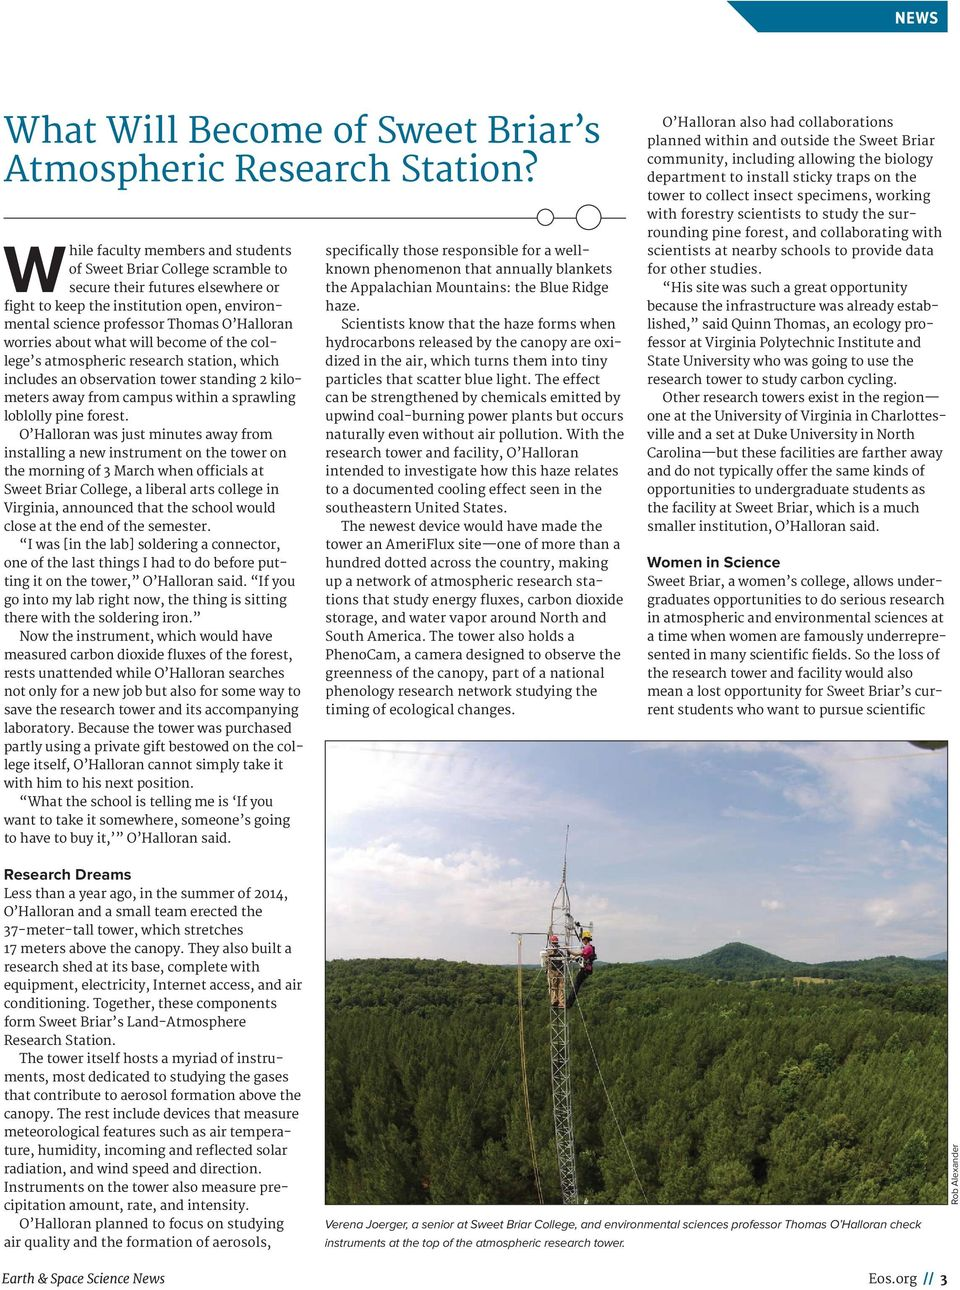 about what will become of the college s atmospheric research station, which includes an observation tower standing 2 kilometers away from campus within a sprawling loblolly pine forest.